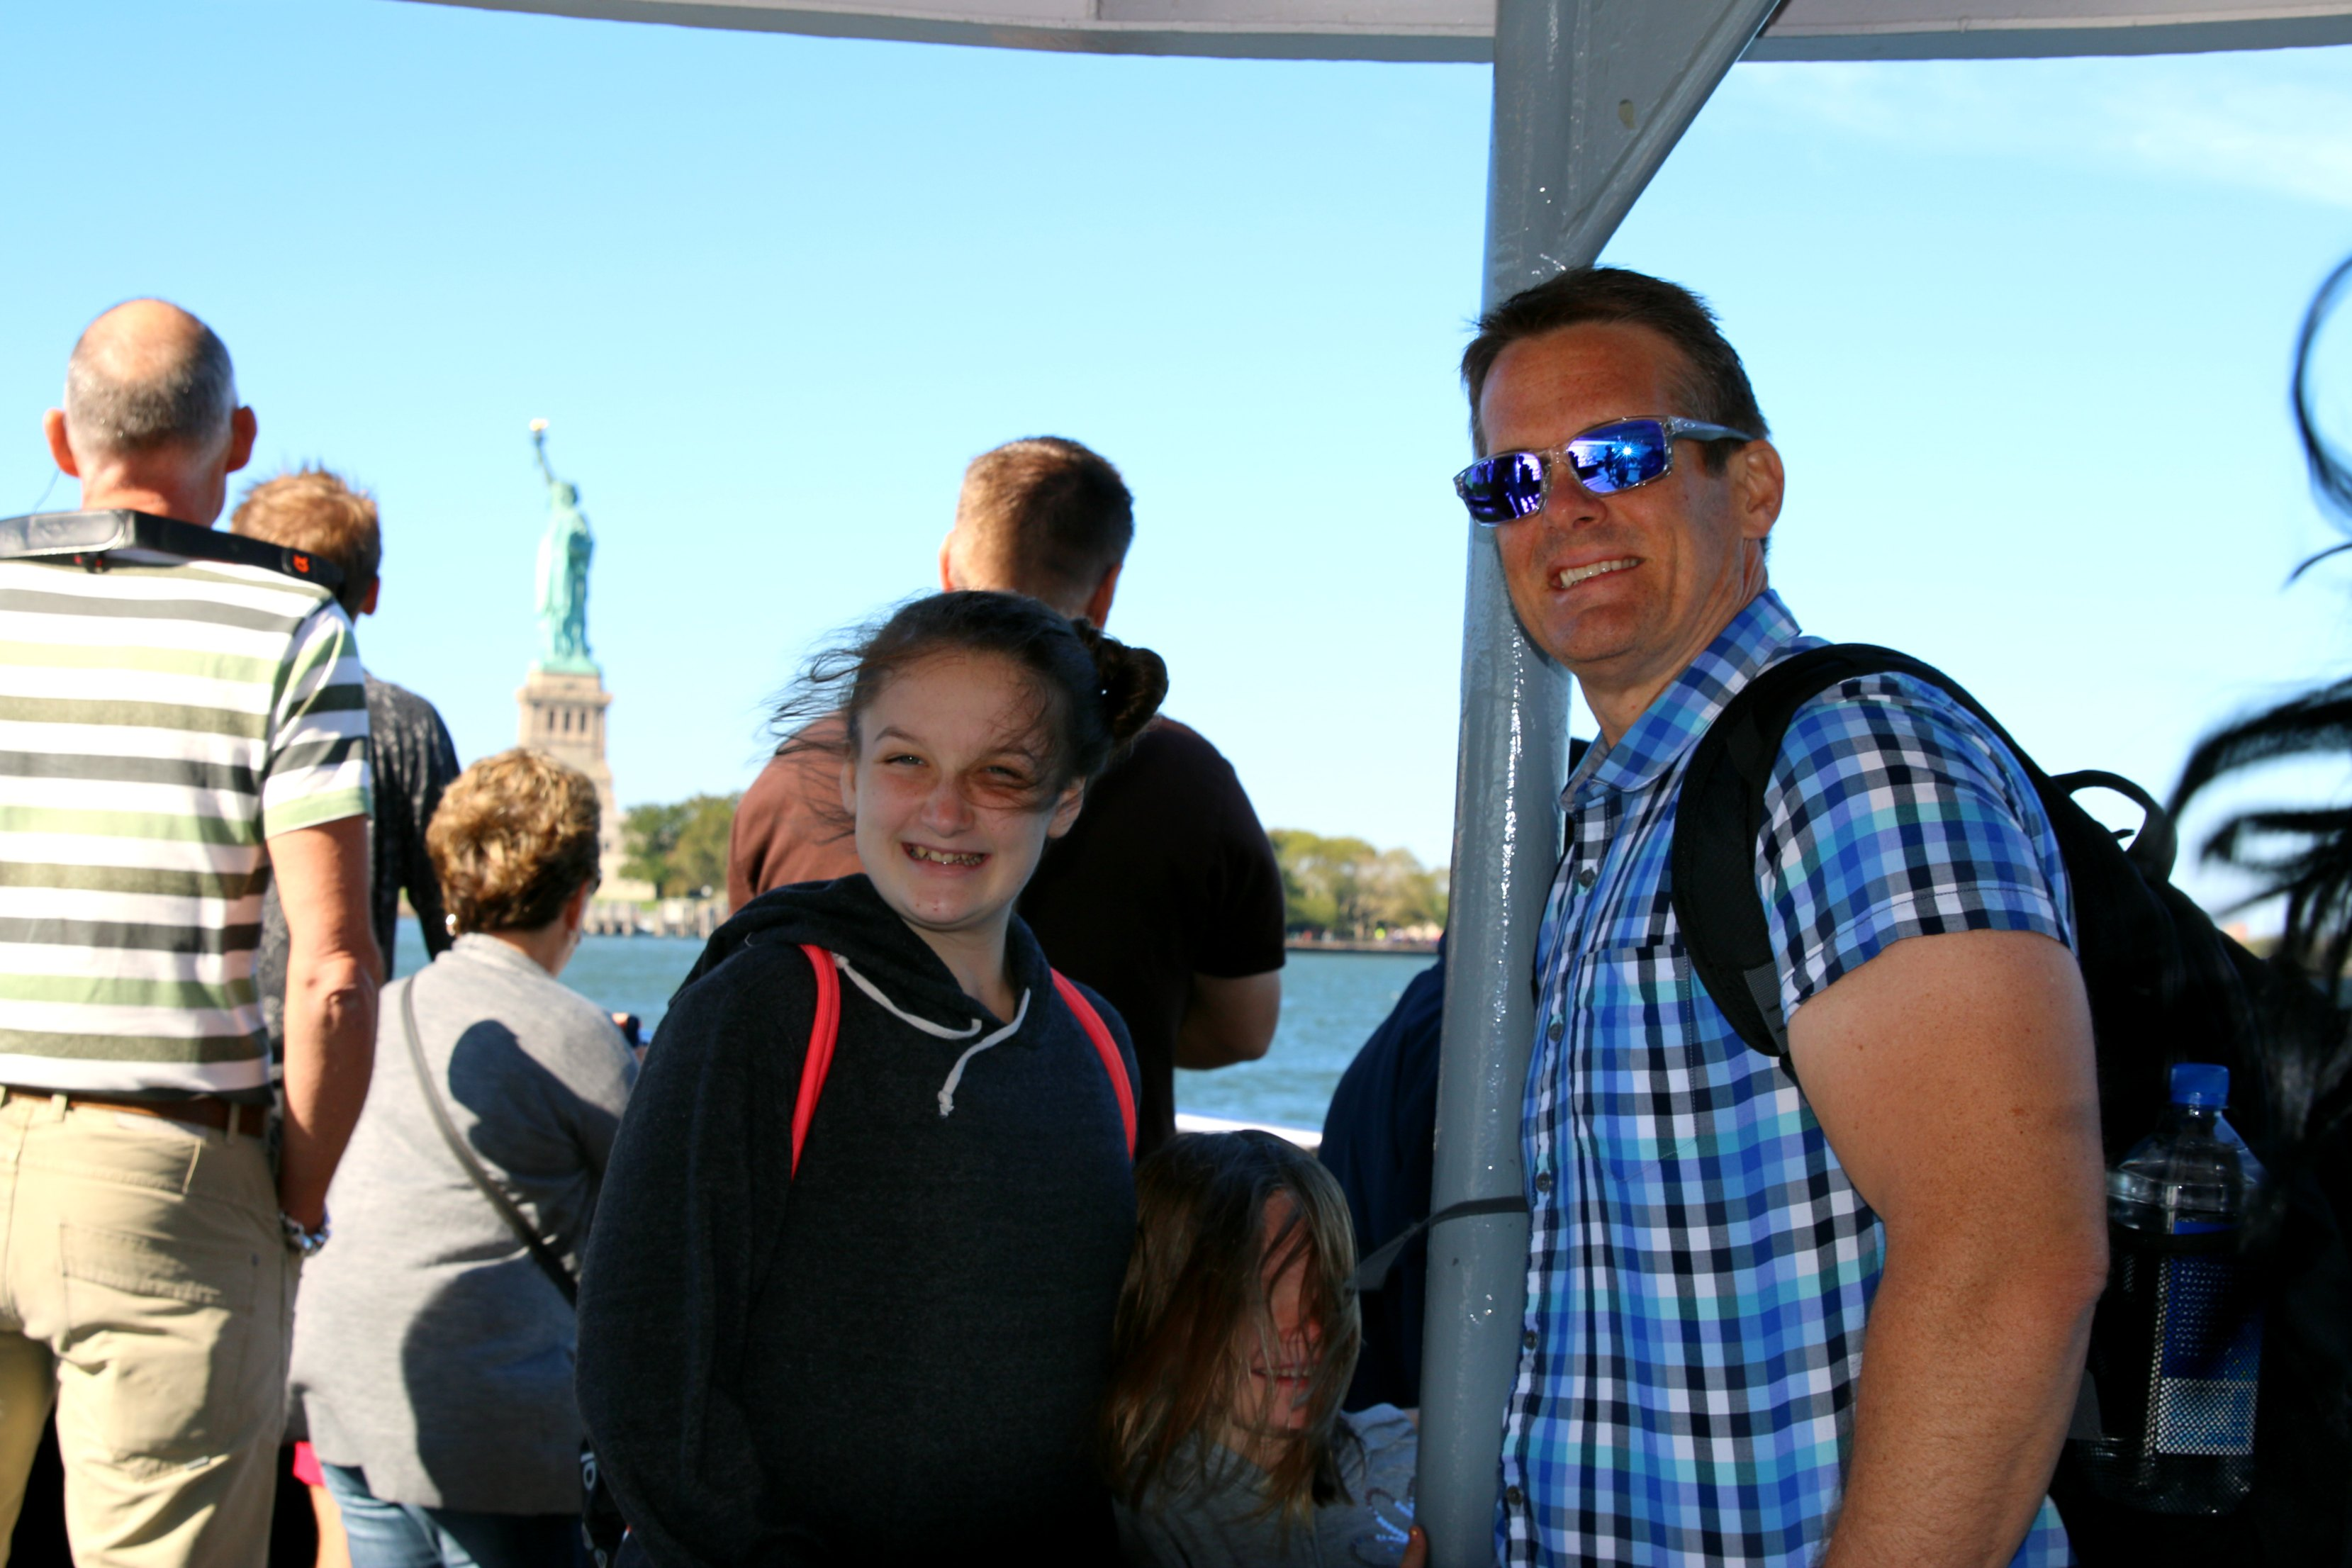 boat ride in new york